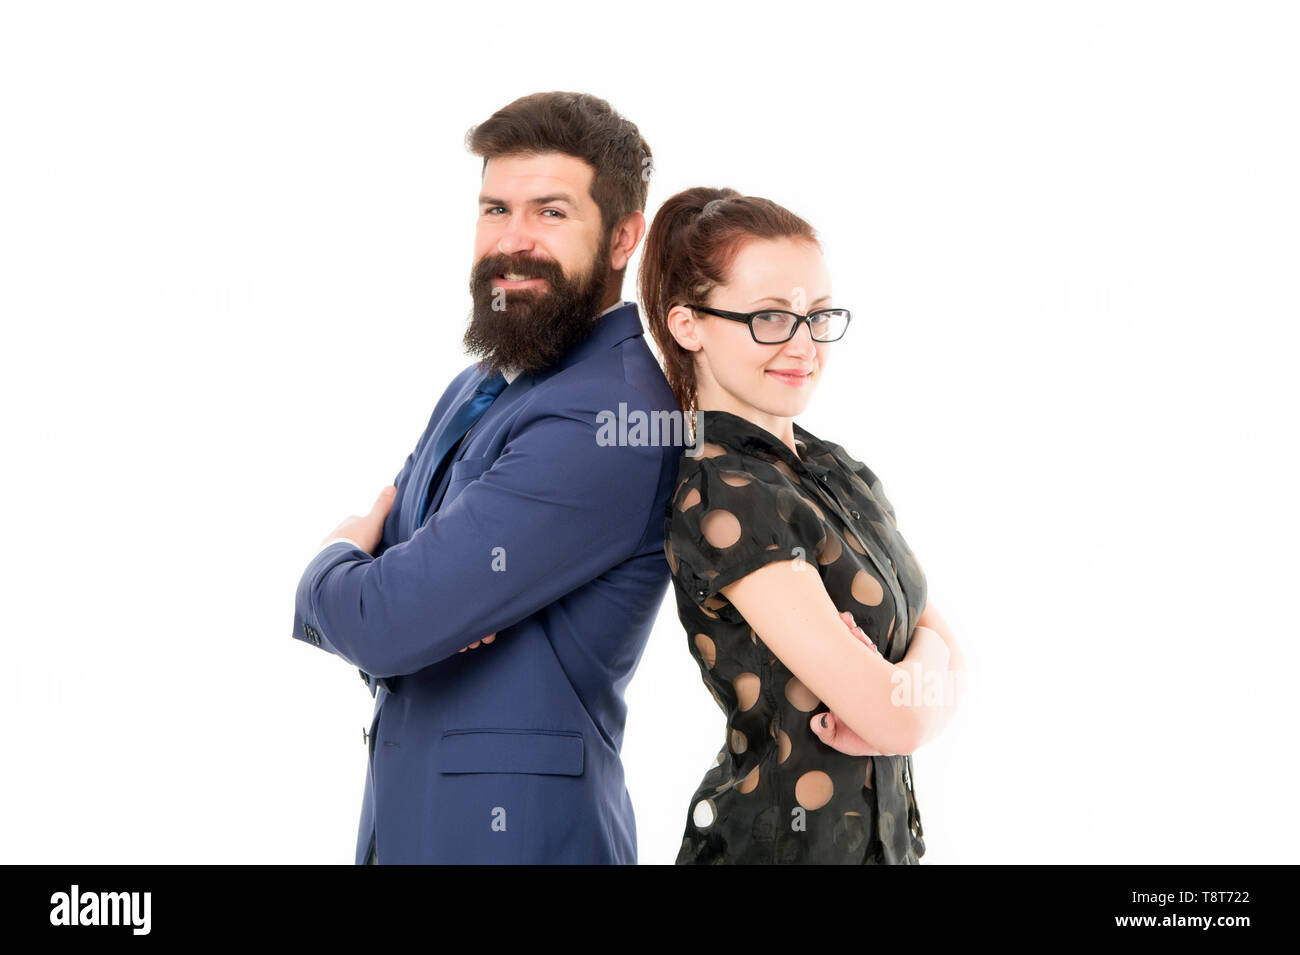 Labor market competition. HR manager. Job interview. Office job lifestyle. Figure out type of position you would really enjoy. Colleagues looking for new job. Man and woman compete for job position. - Stock Image